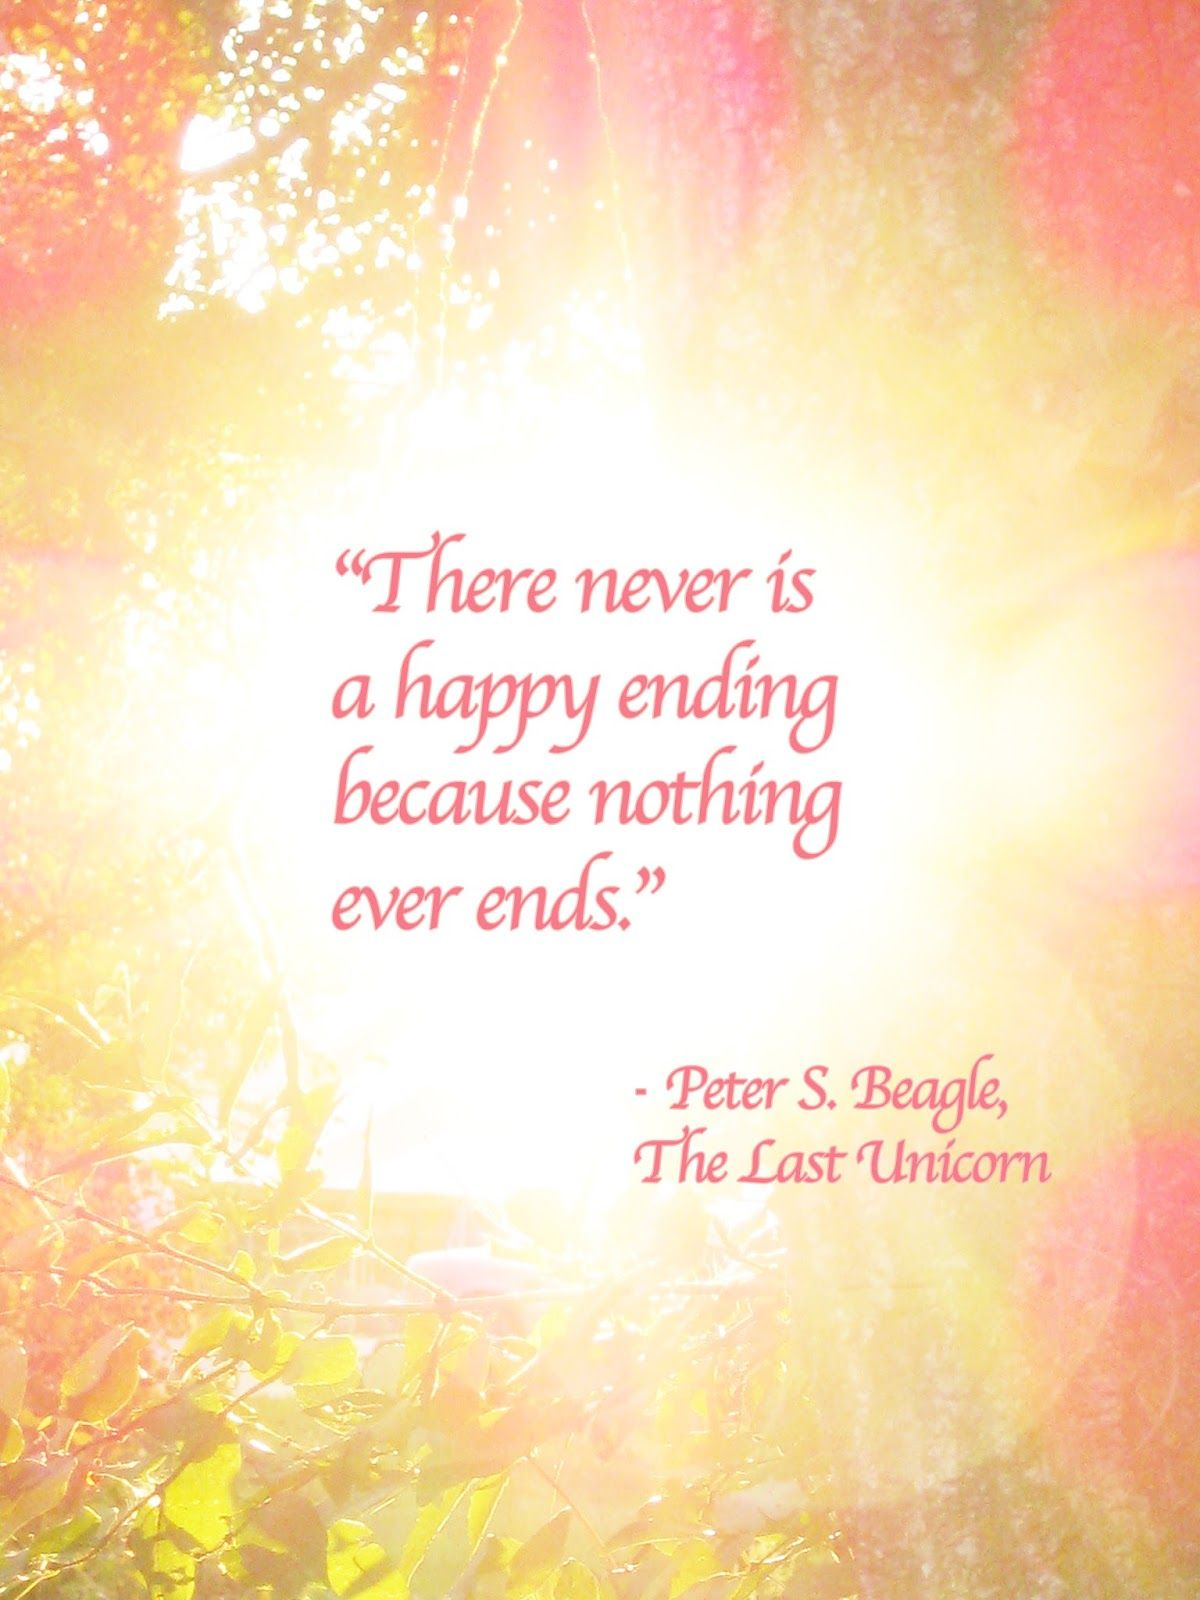 There never is a happy ending because nothing ever ends